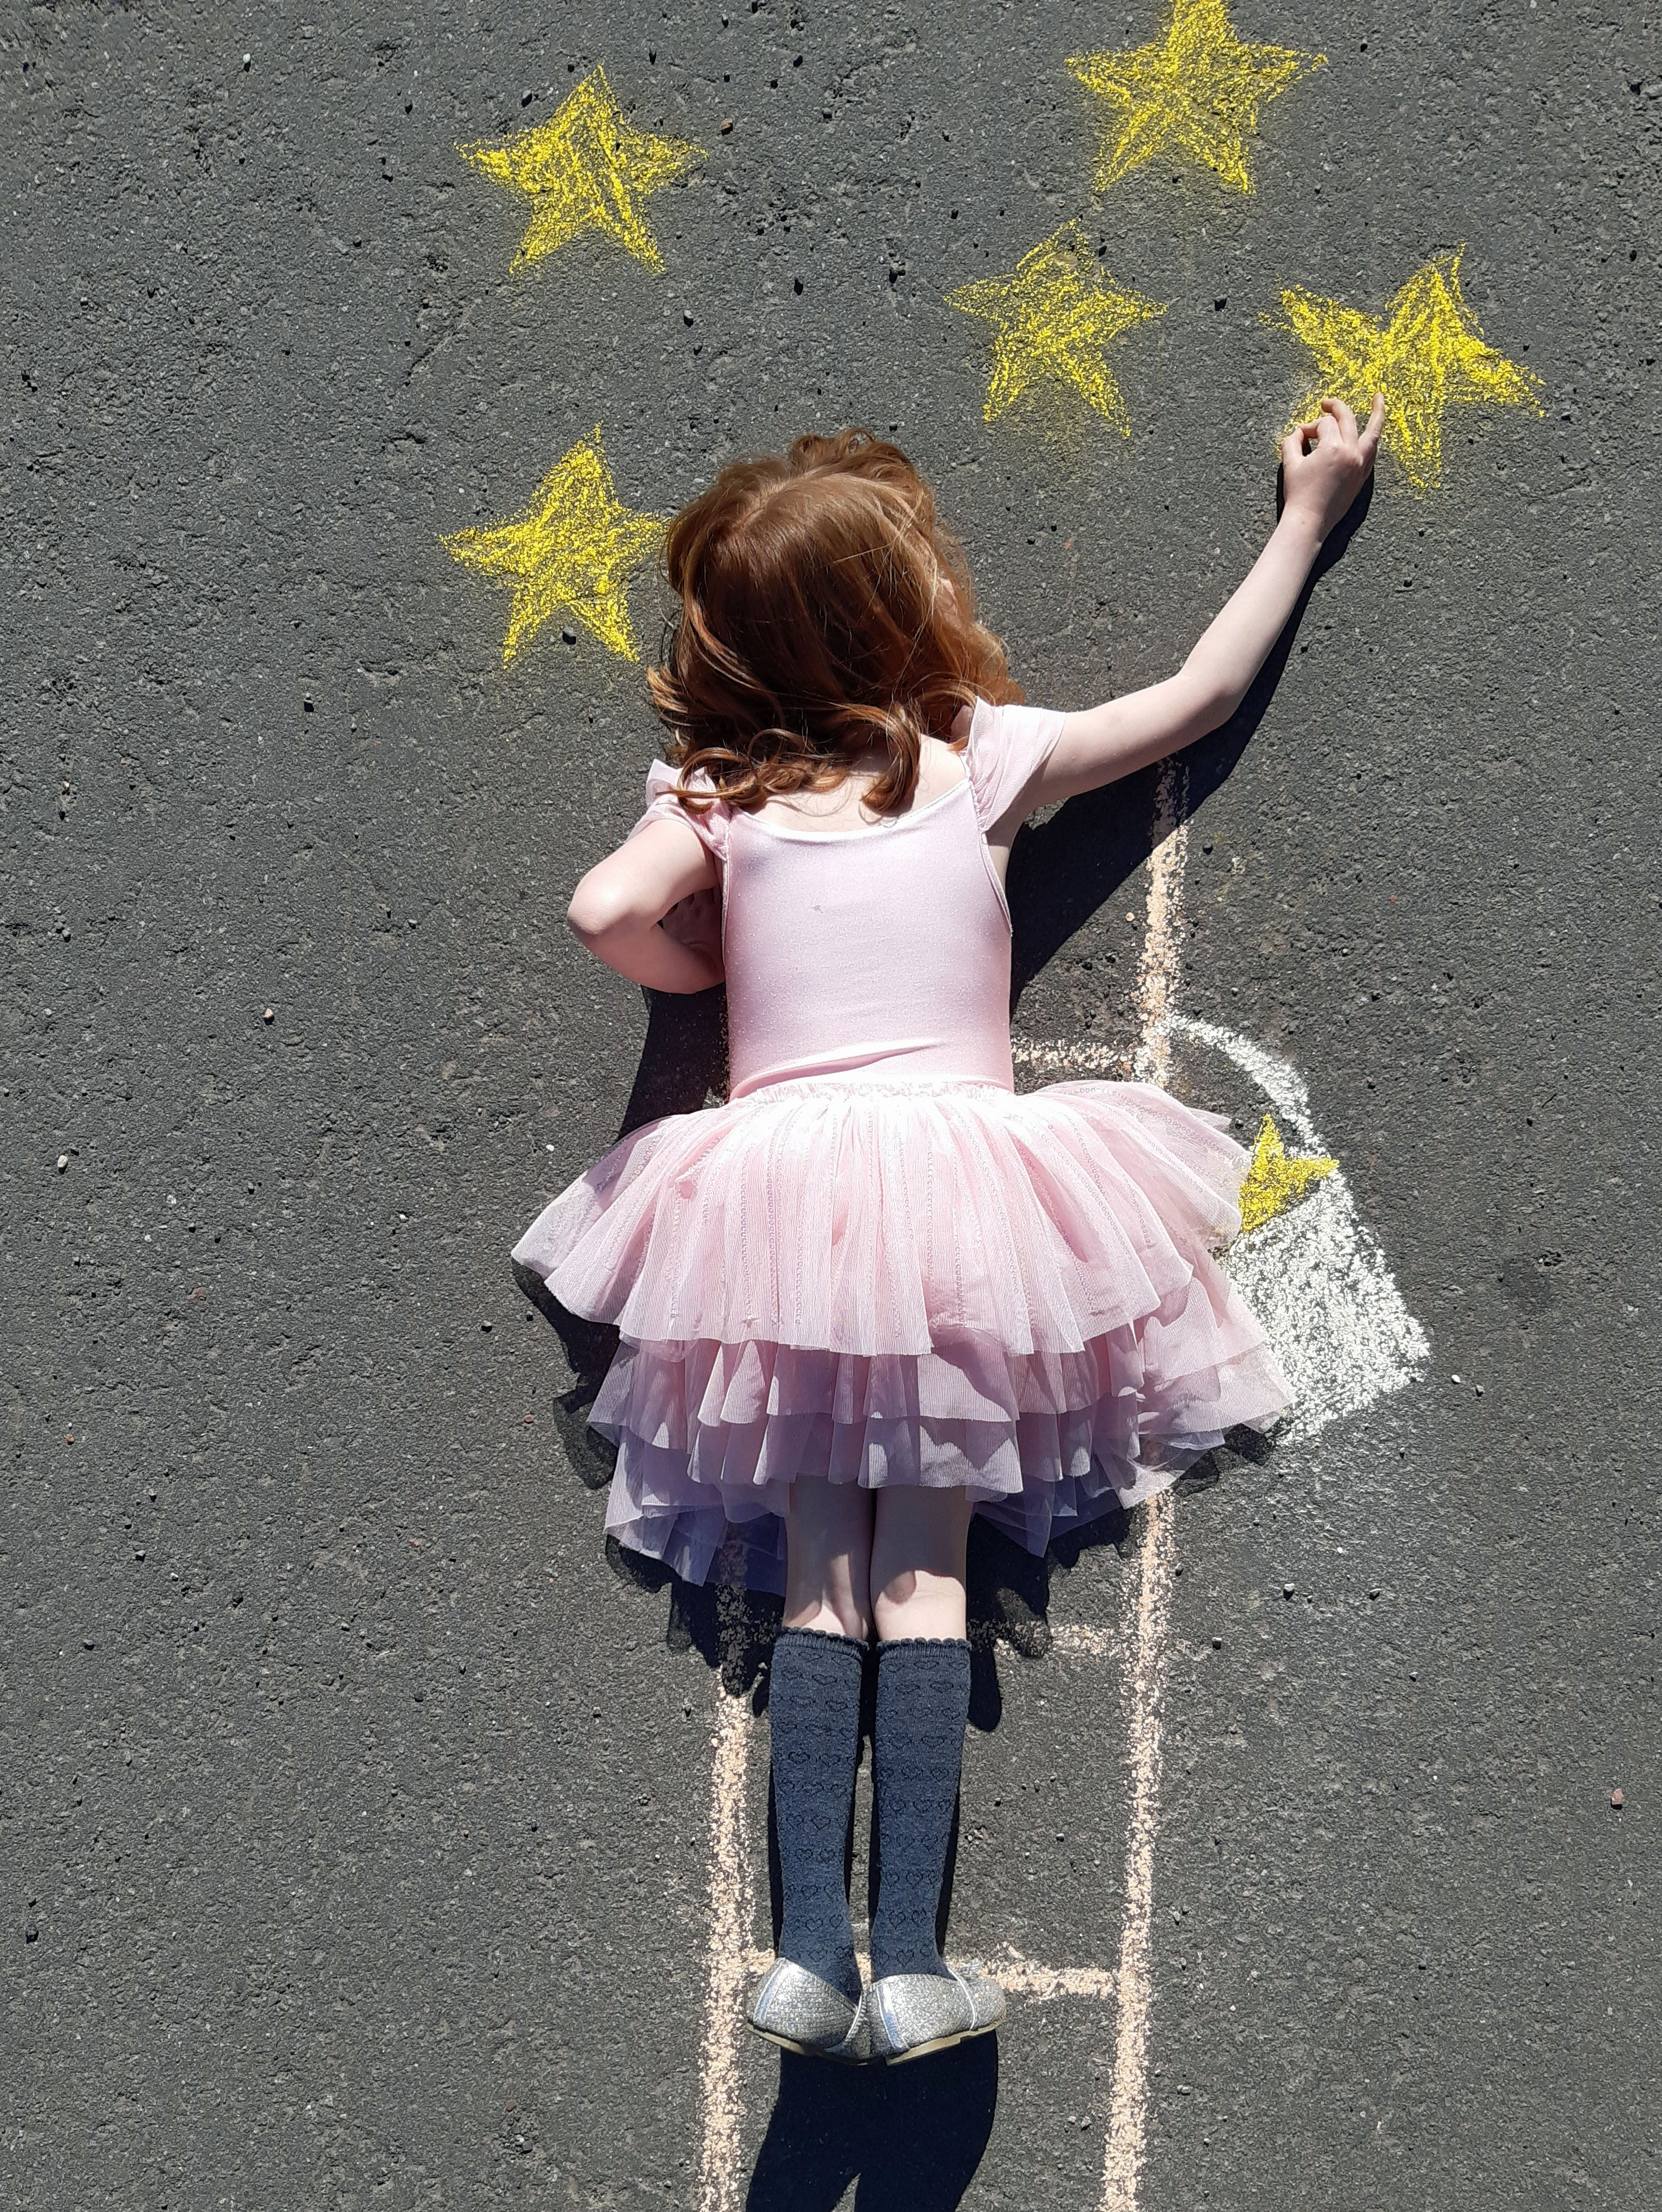 Chalk Drawing In